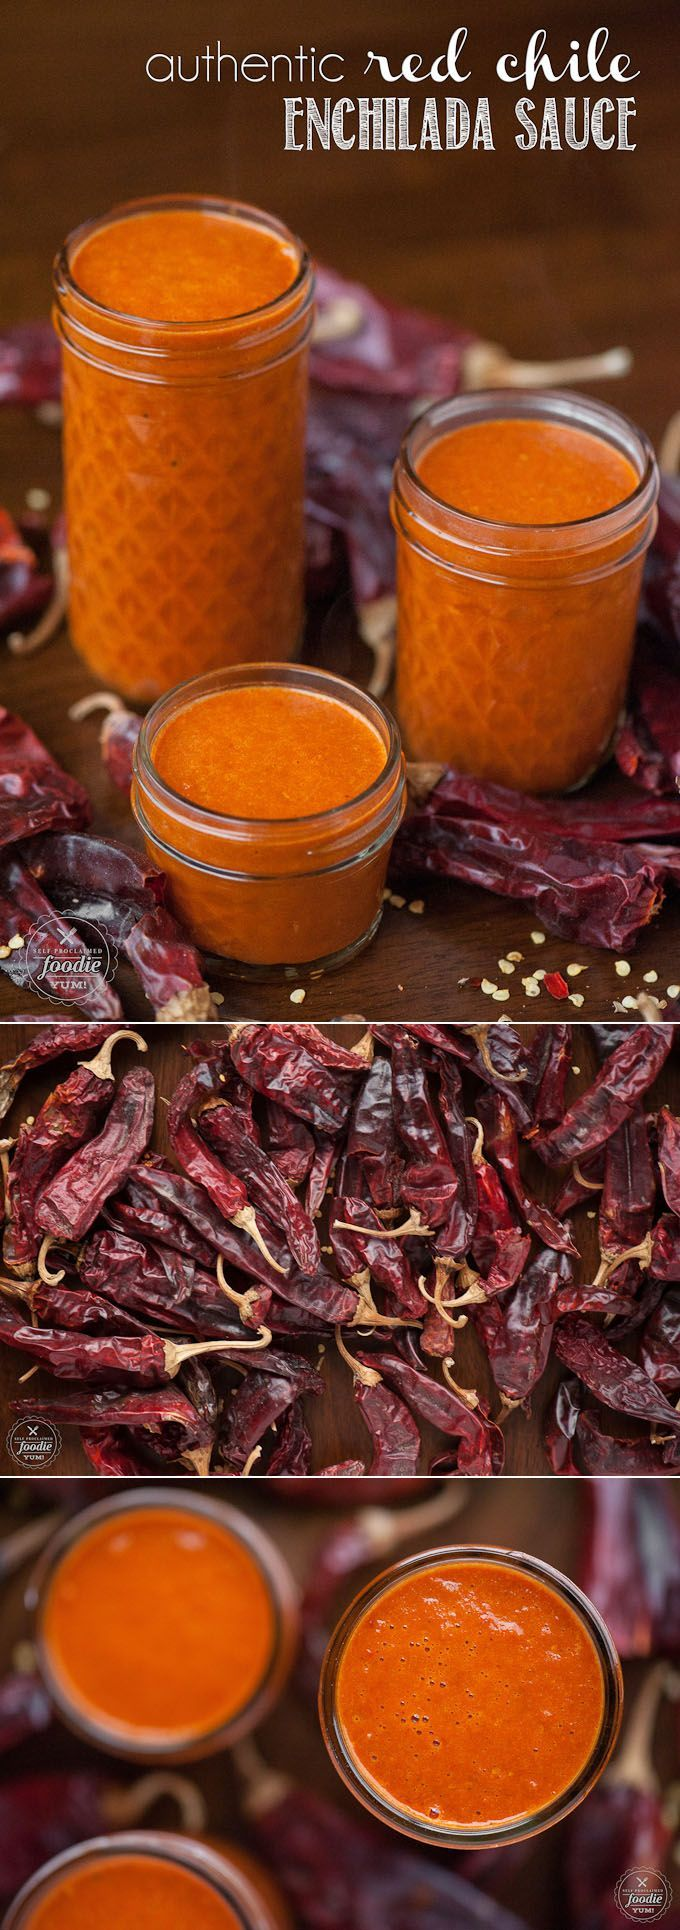 Create your own Authentic Red Chile Enchilada Sauce made with dried New Mexican red chile pods and use on burritos, enchiladas, eggs, tamales - anything!